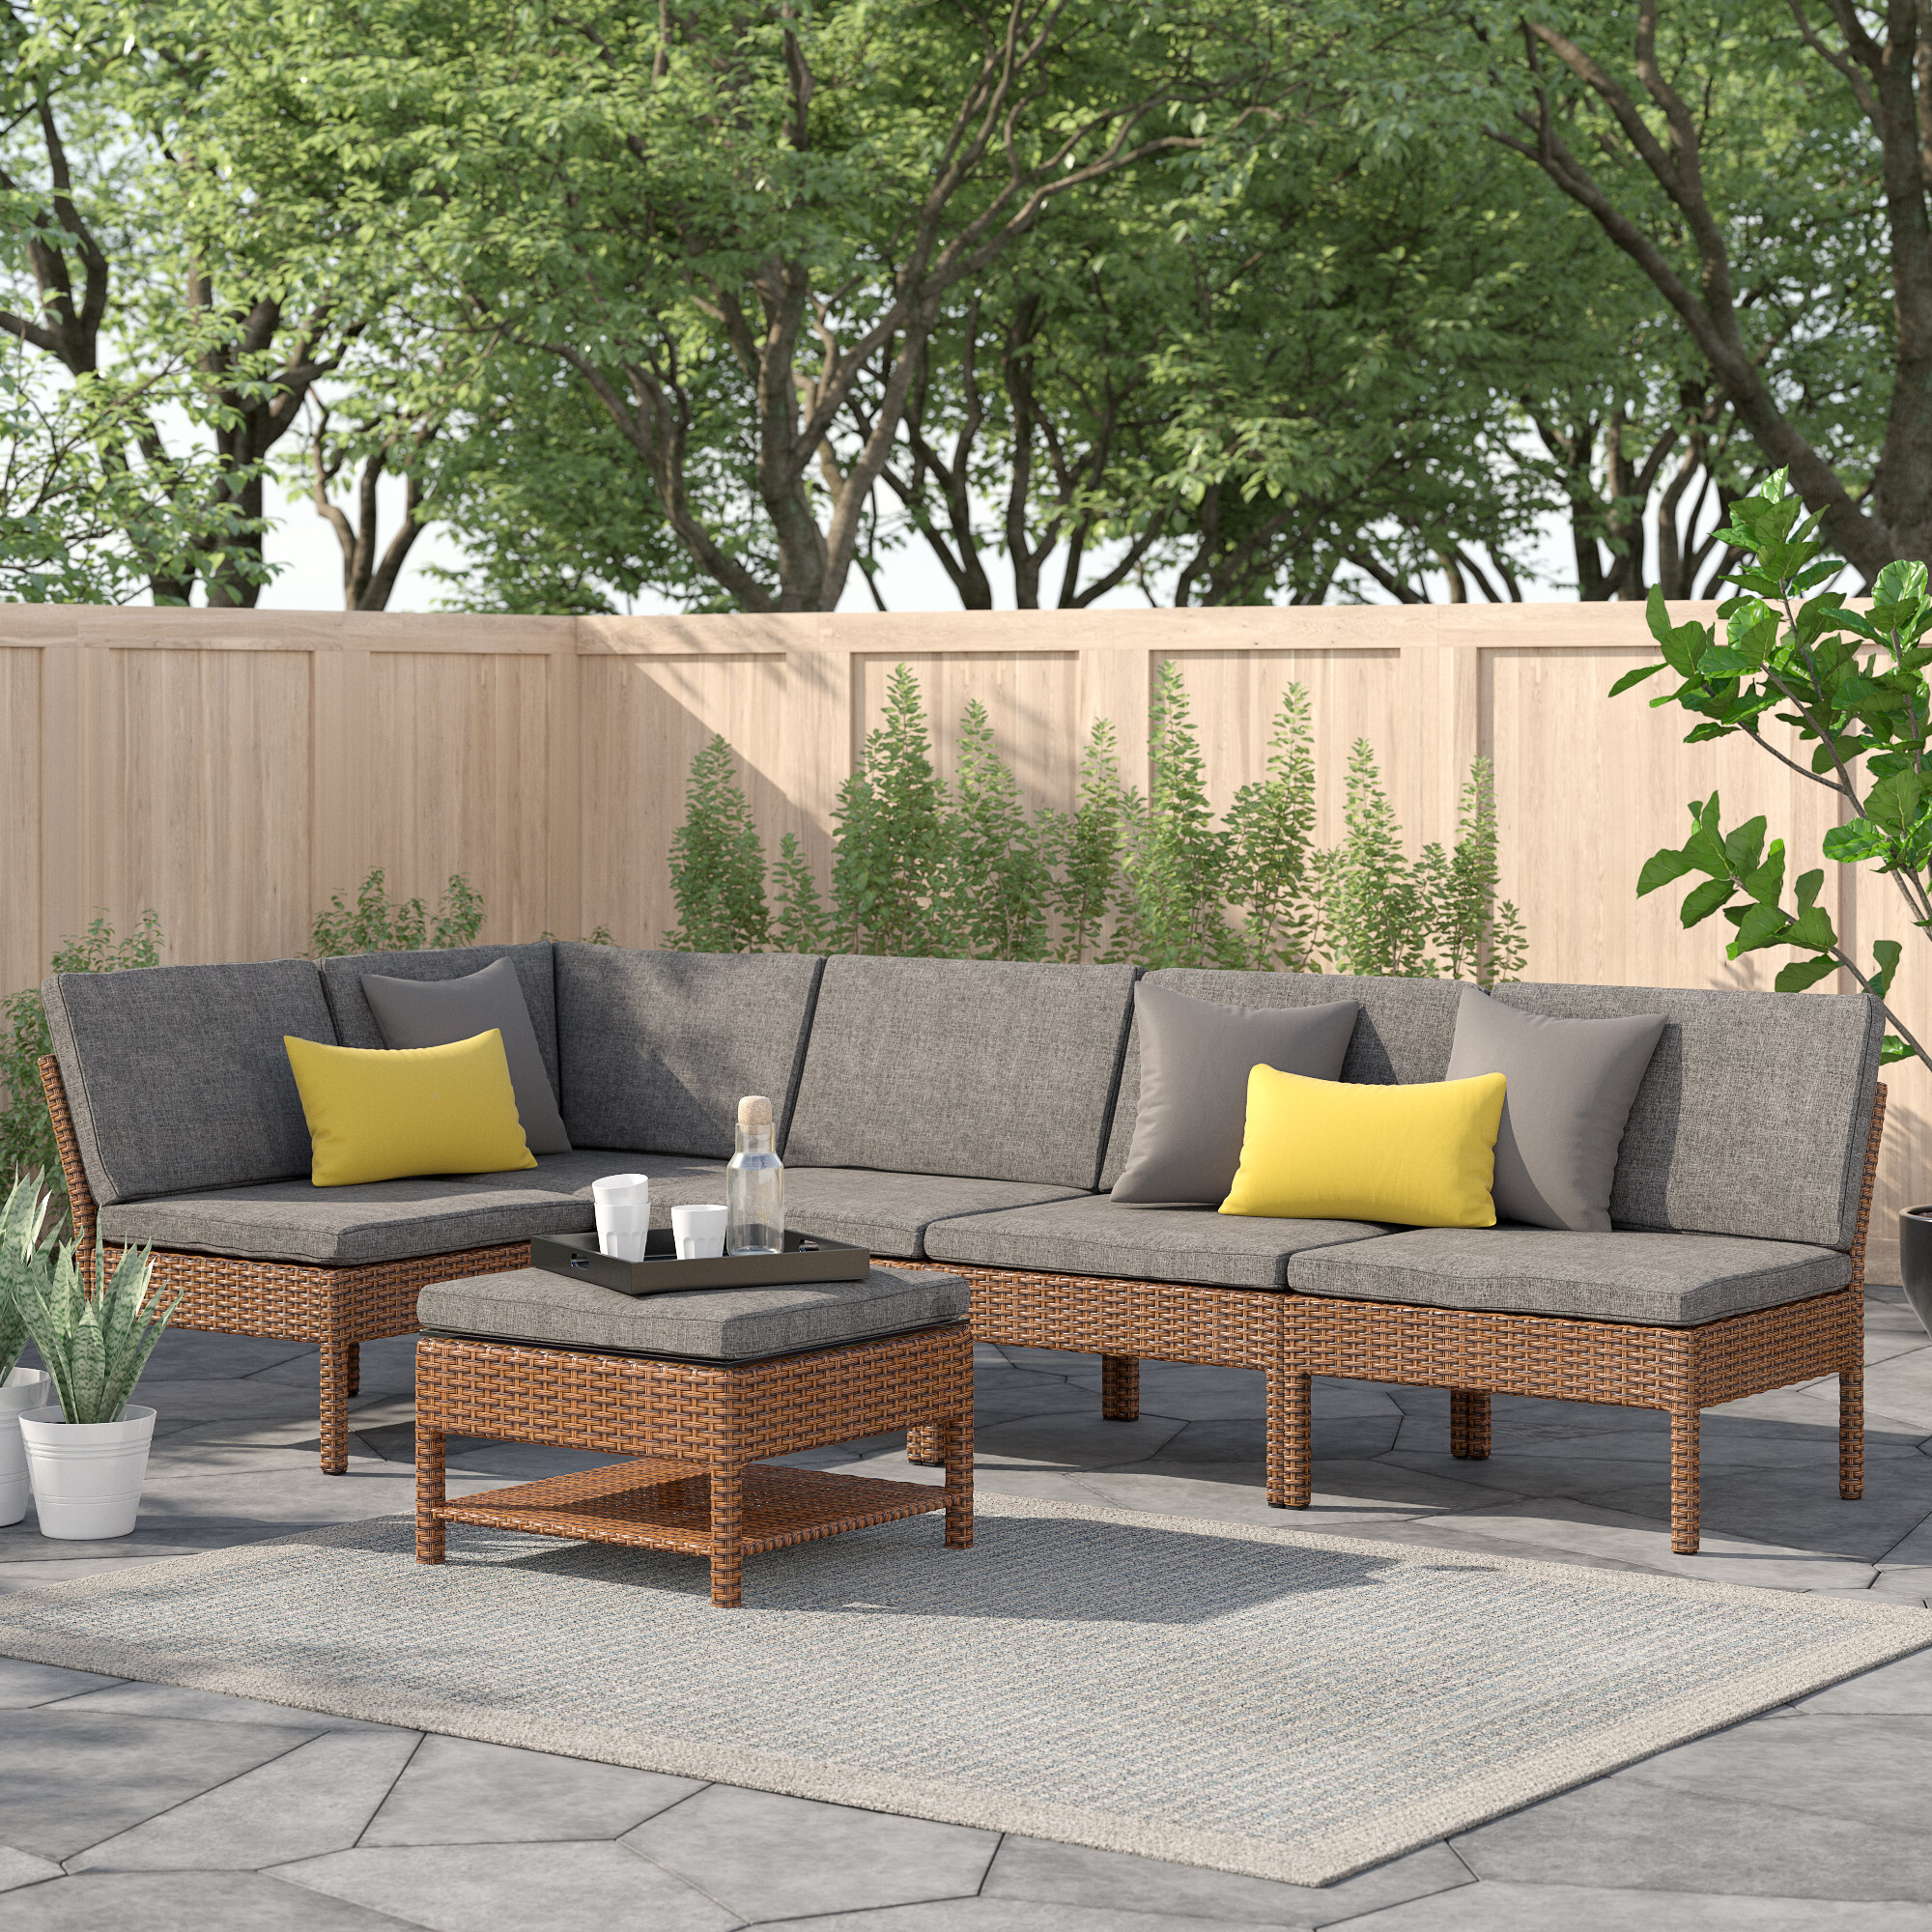 6 Piece Outdoor Sectional You'll Love In (View 11 of 20)